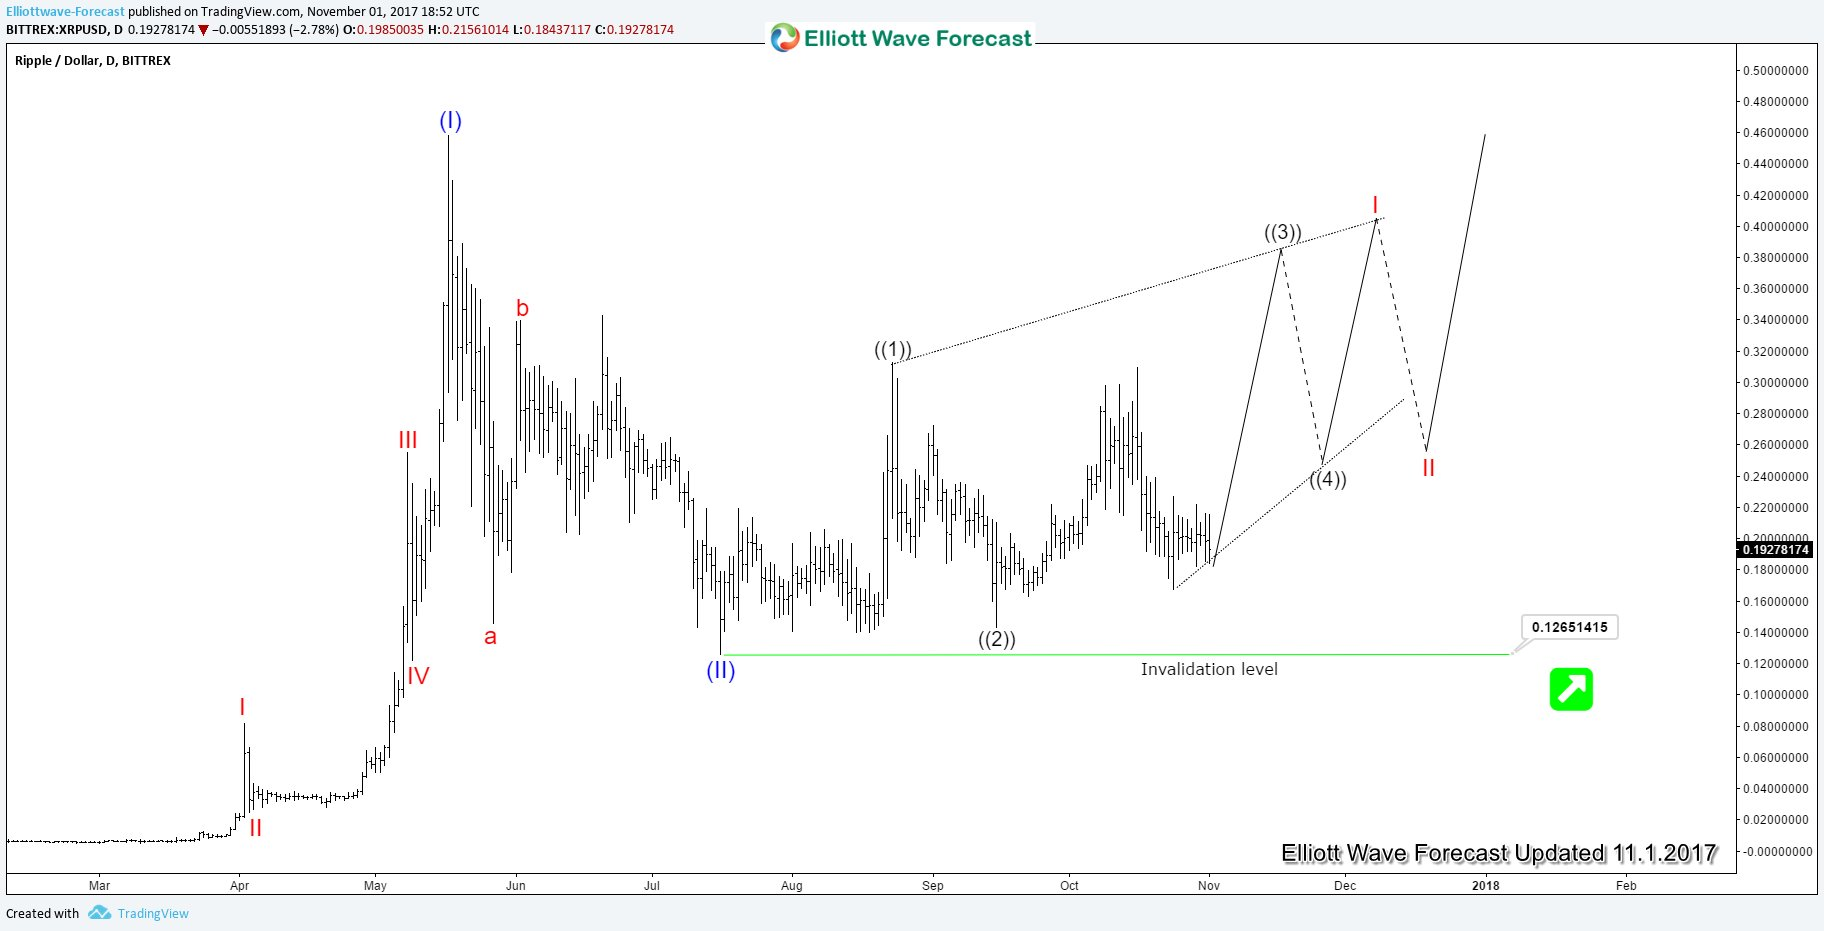 XRPUSD Daily Elliott Wave Analysis